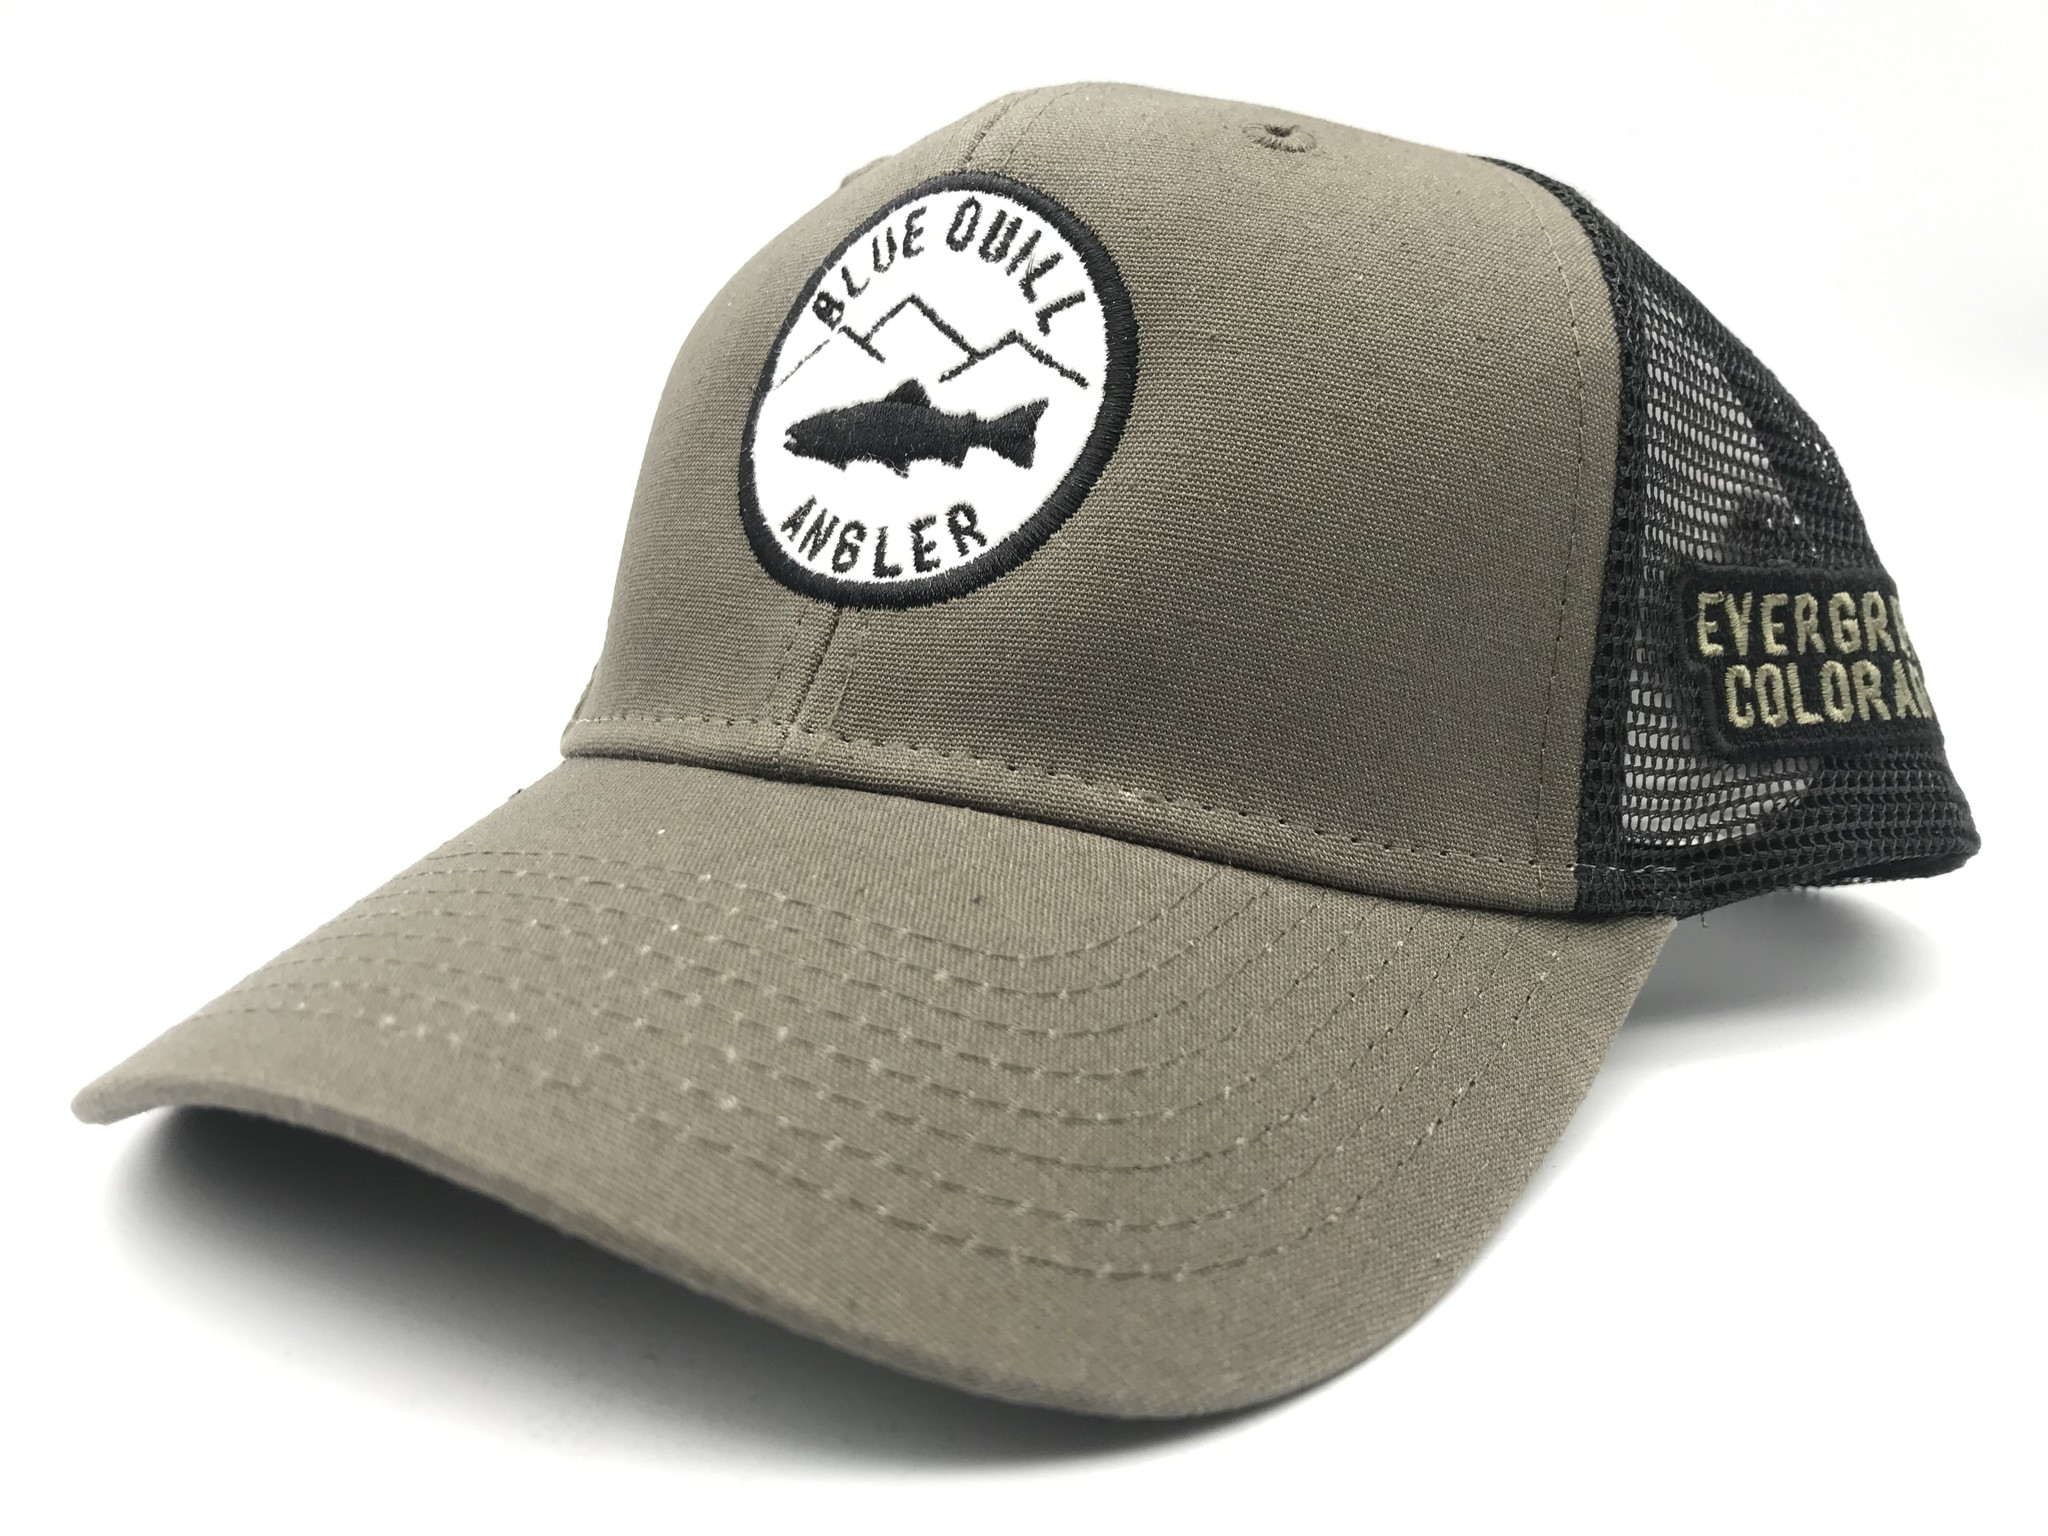 BLUE QUILL ANGLER Blue Quill Logo Industrial Canvas Mesh Cap